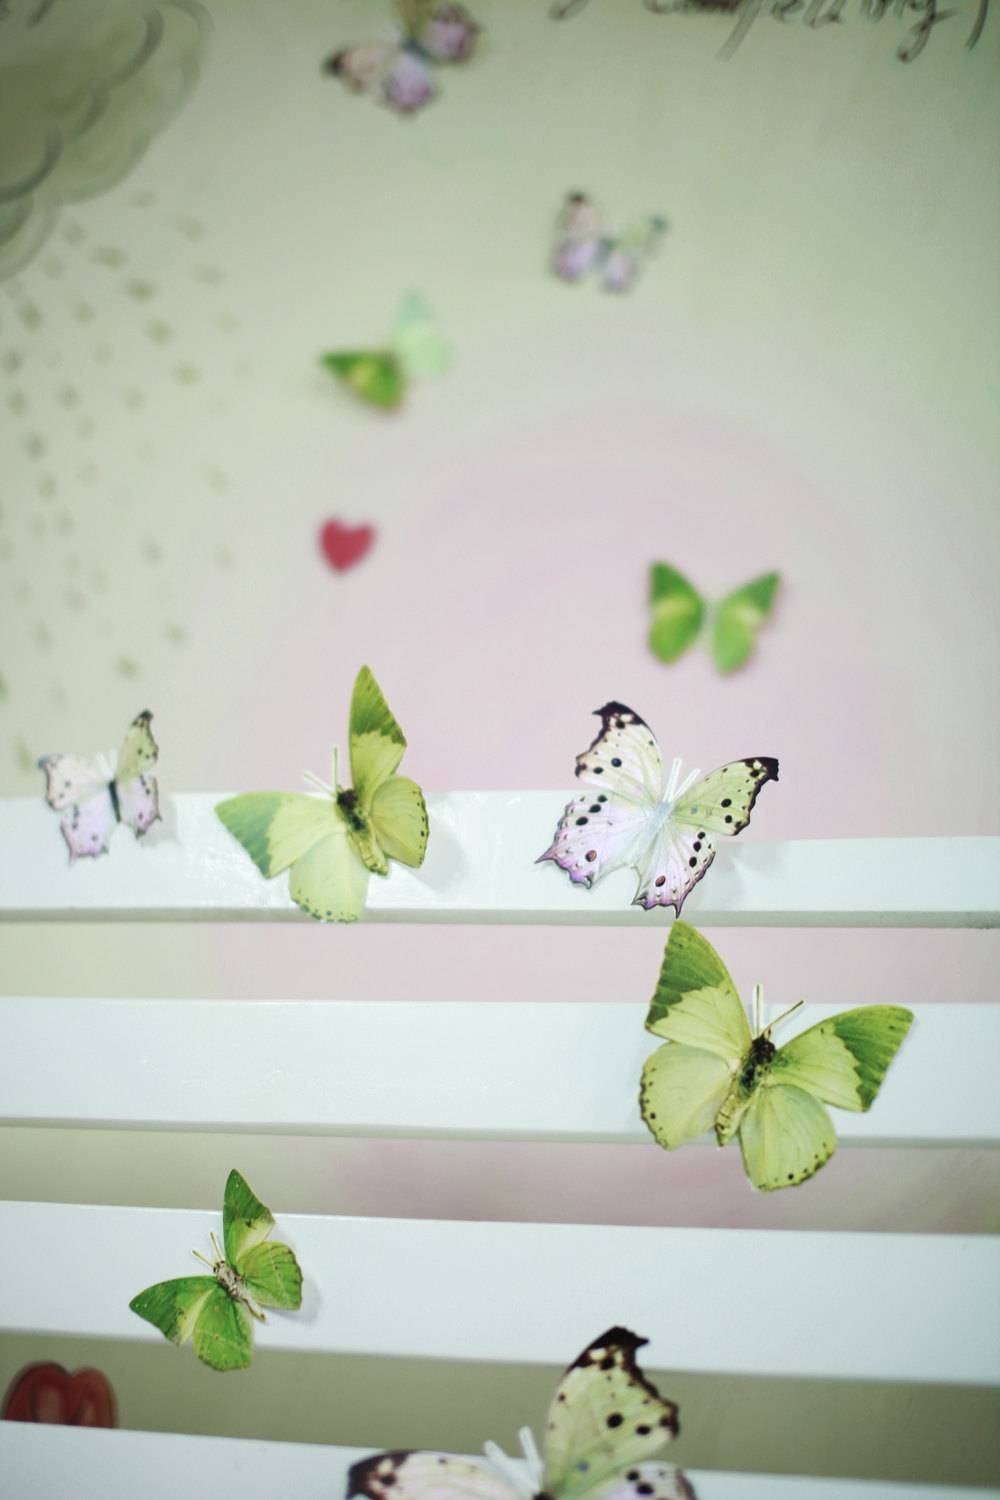 12 3d Wall Butterflies3d Butterfly Wall Art Decoration Regarding Most Up To Date Butterflies 3d Wall Art (View 8 of 20)